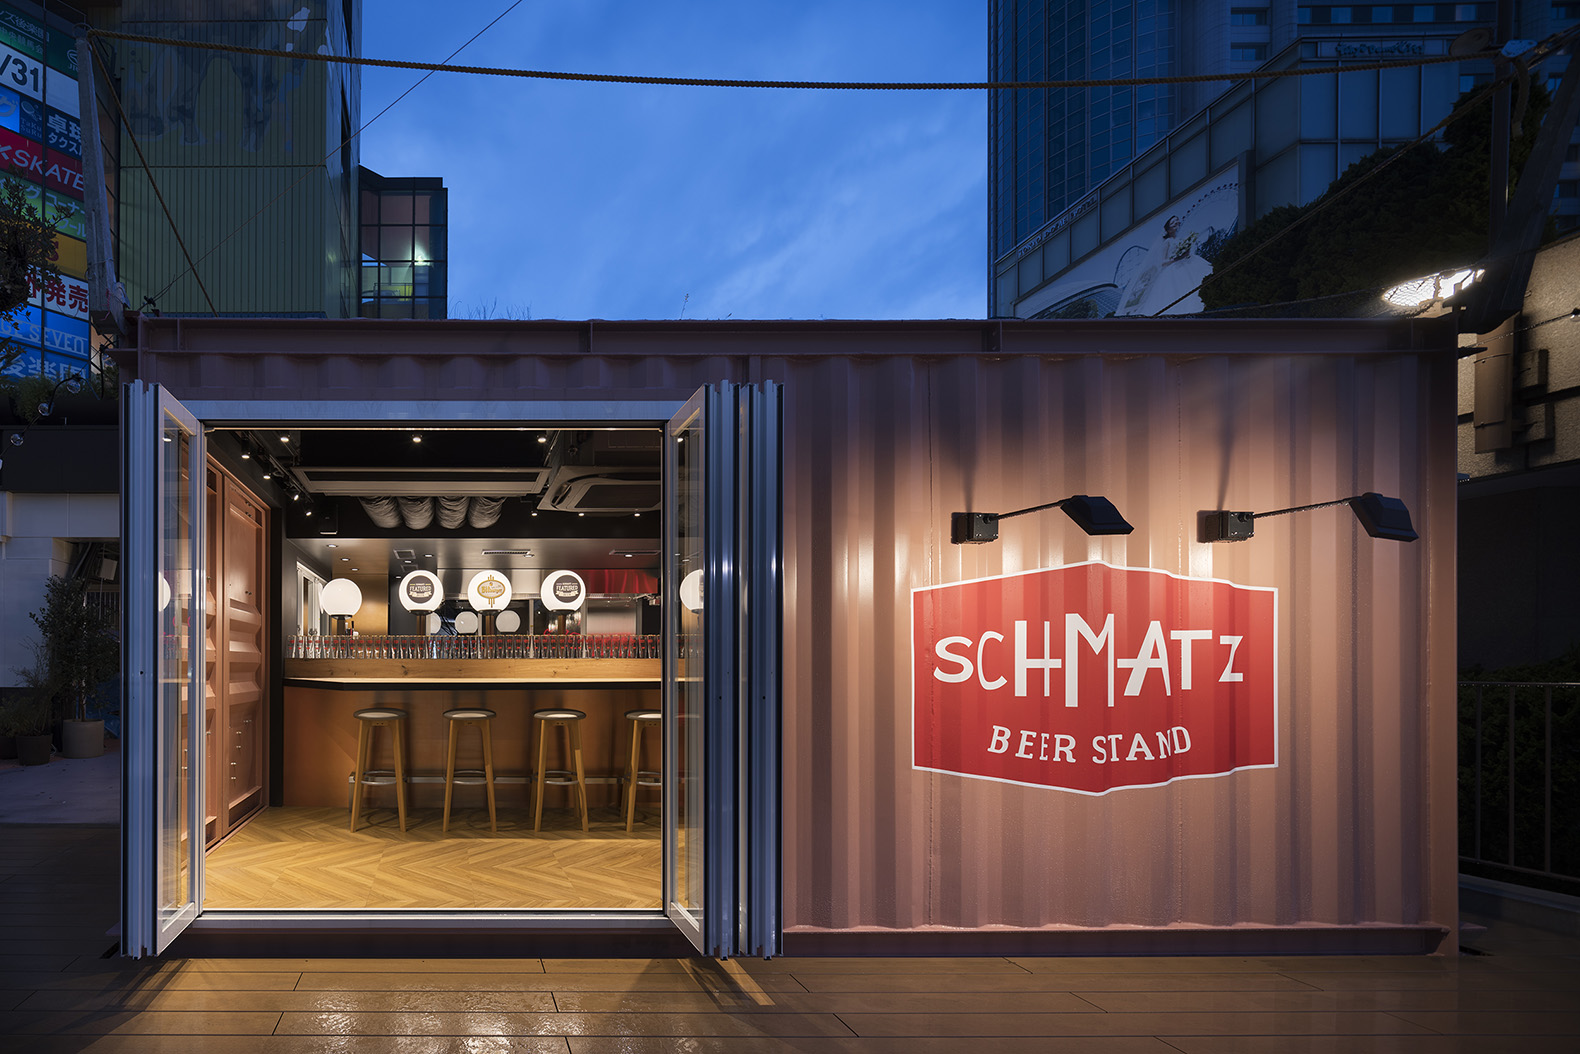 Repurposed shipping container now holds a trendy beer stand in Tokyo